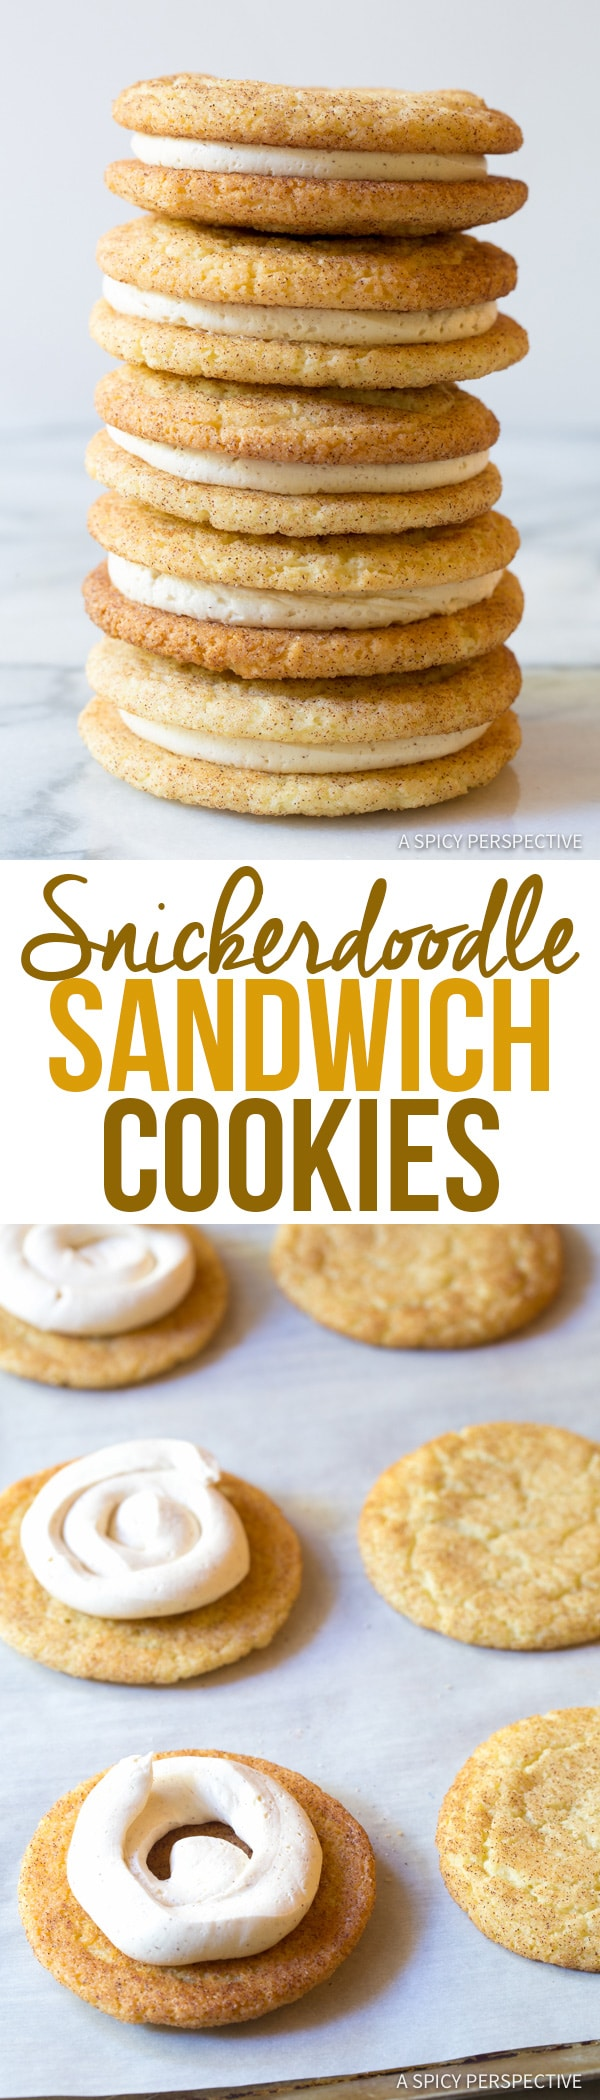 Best Snickerdoodle Sandwich Cookies | A Spicy Perspective #christmas #holidays